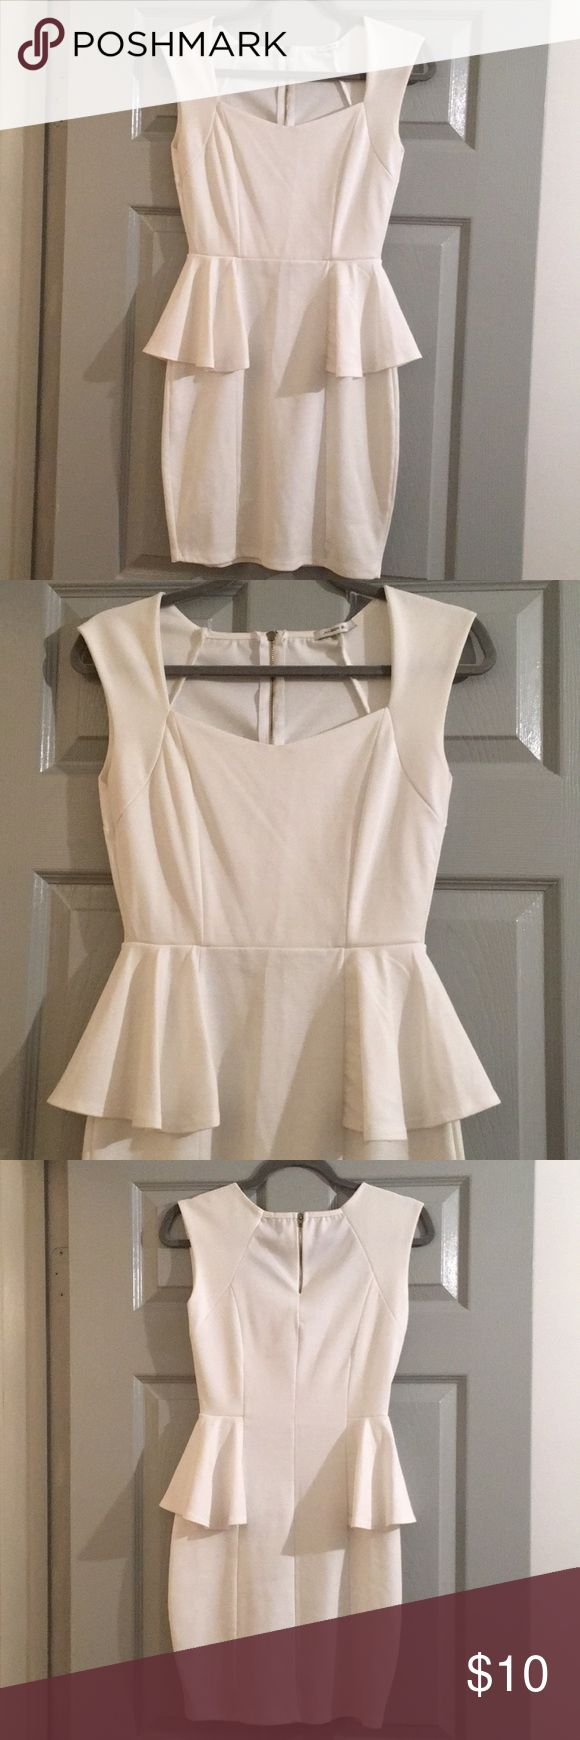 White peplum dress White peplum dress with ruffles at waist, cap sleeve, unique neckline. Gold zipper on back. Worn only once. Would be perfect for a bride-to-be or graduation dress! Dresses